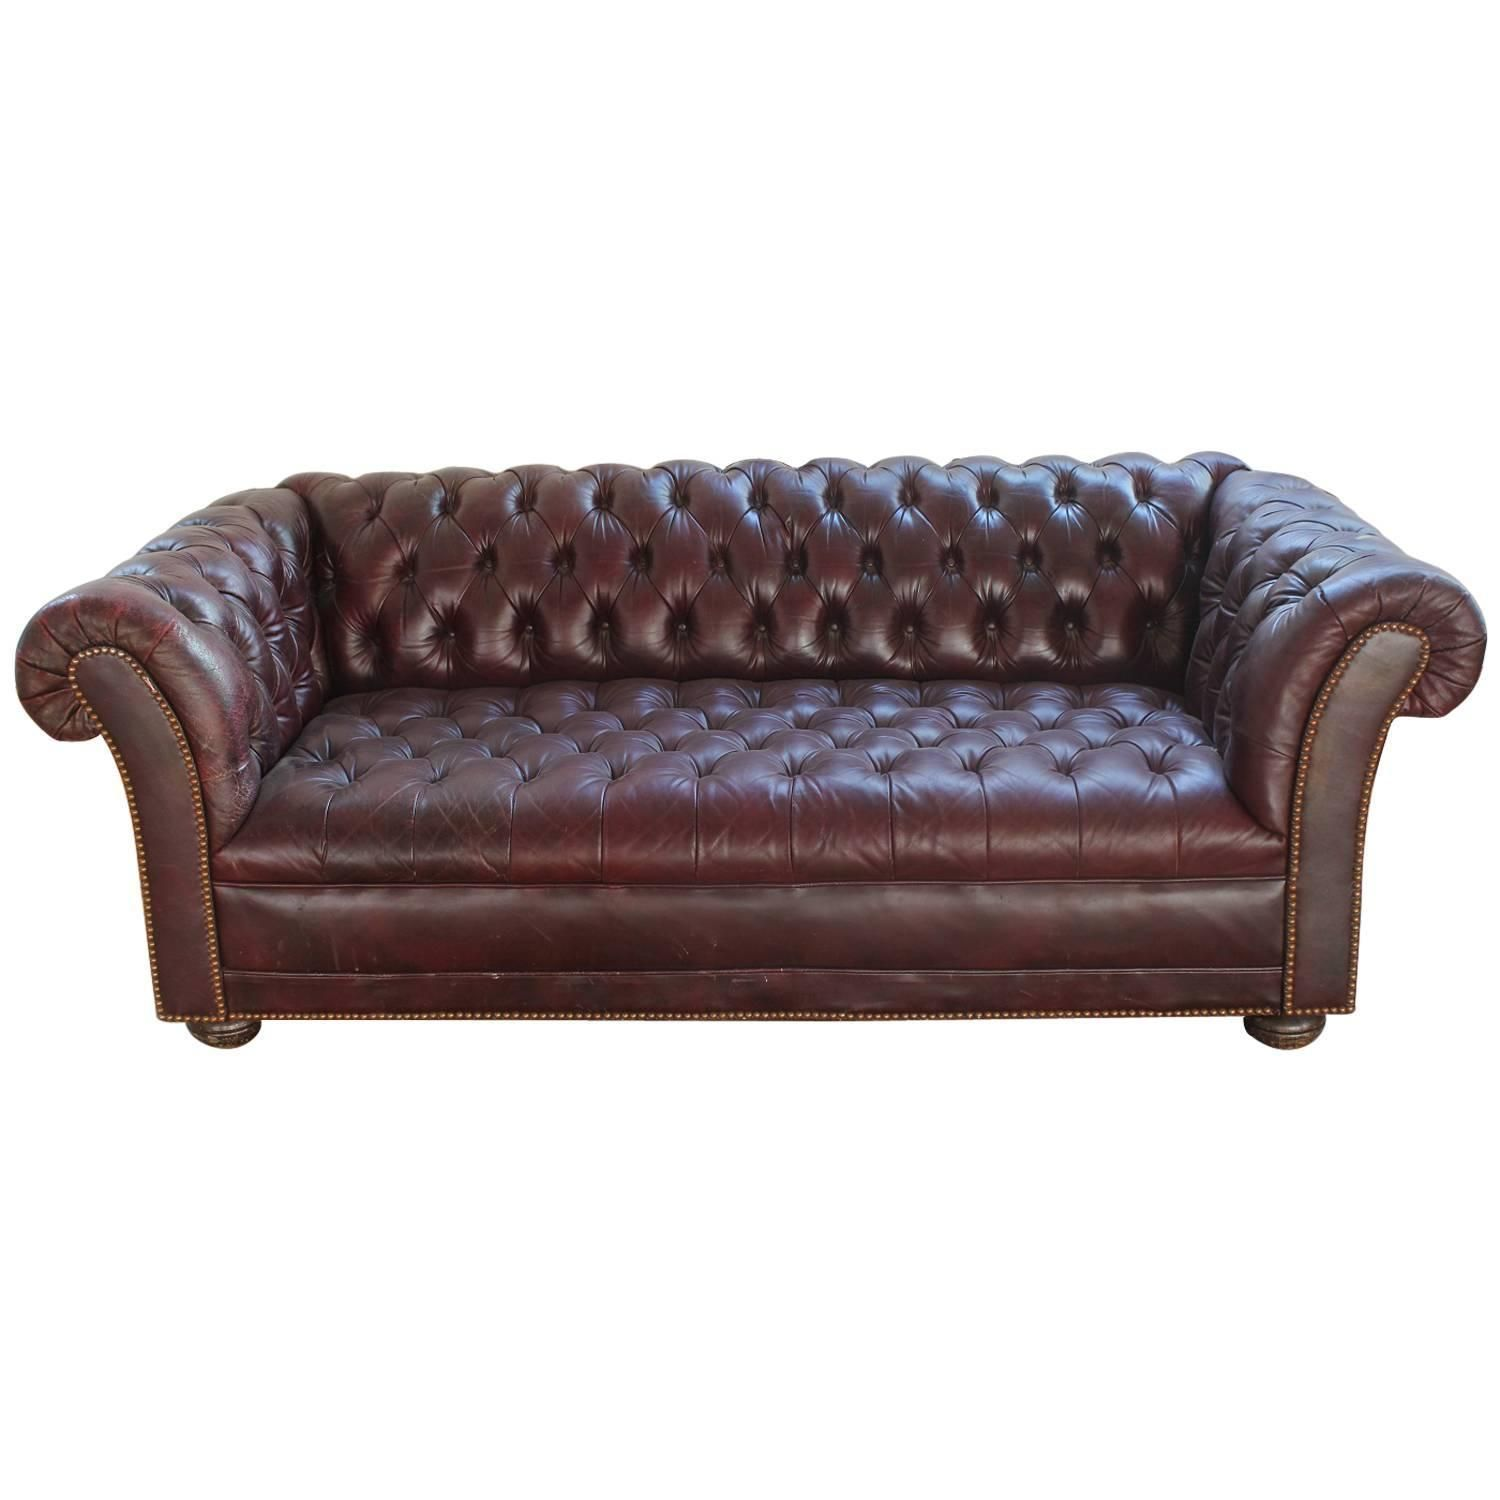 Chesterfield Sofa Texture Vintage Distressed Burgundy Leather Chesterfield Sofa